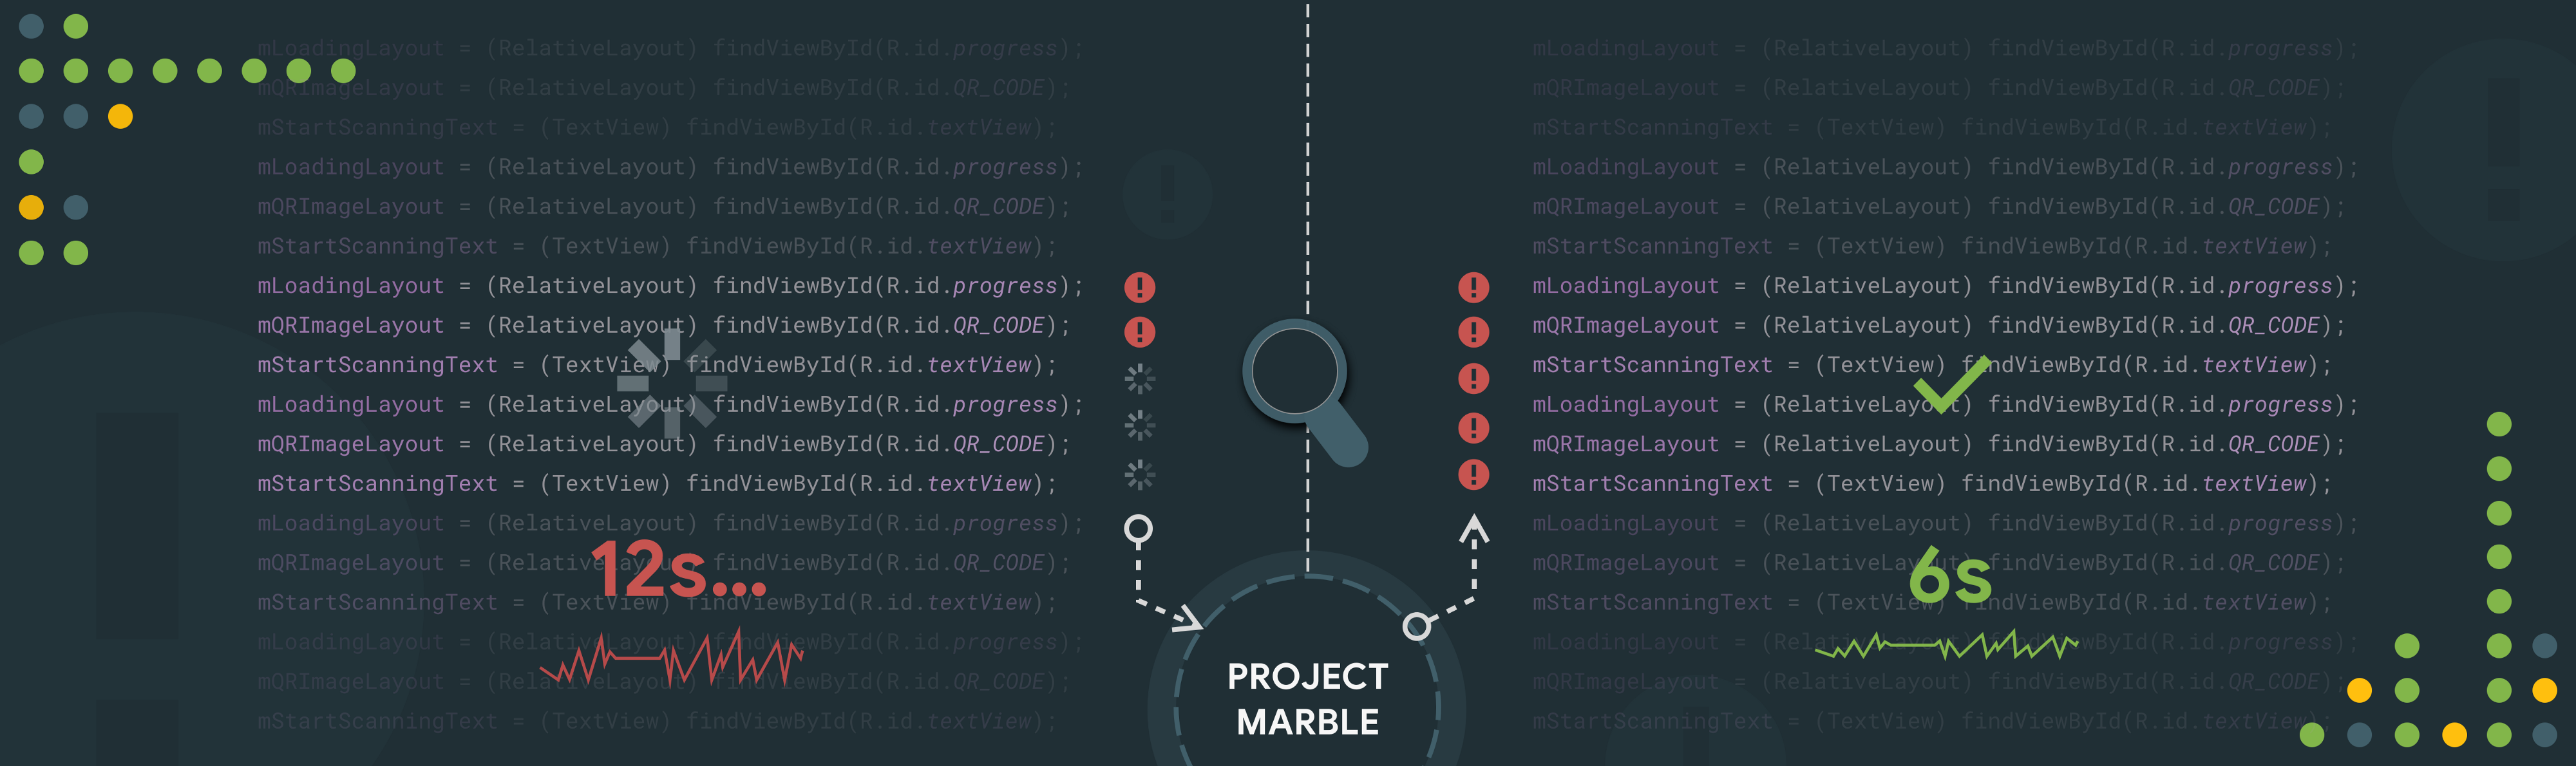 Android Studio Project Marble: Lint Performance - Android Developers